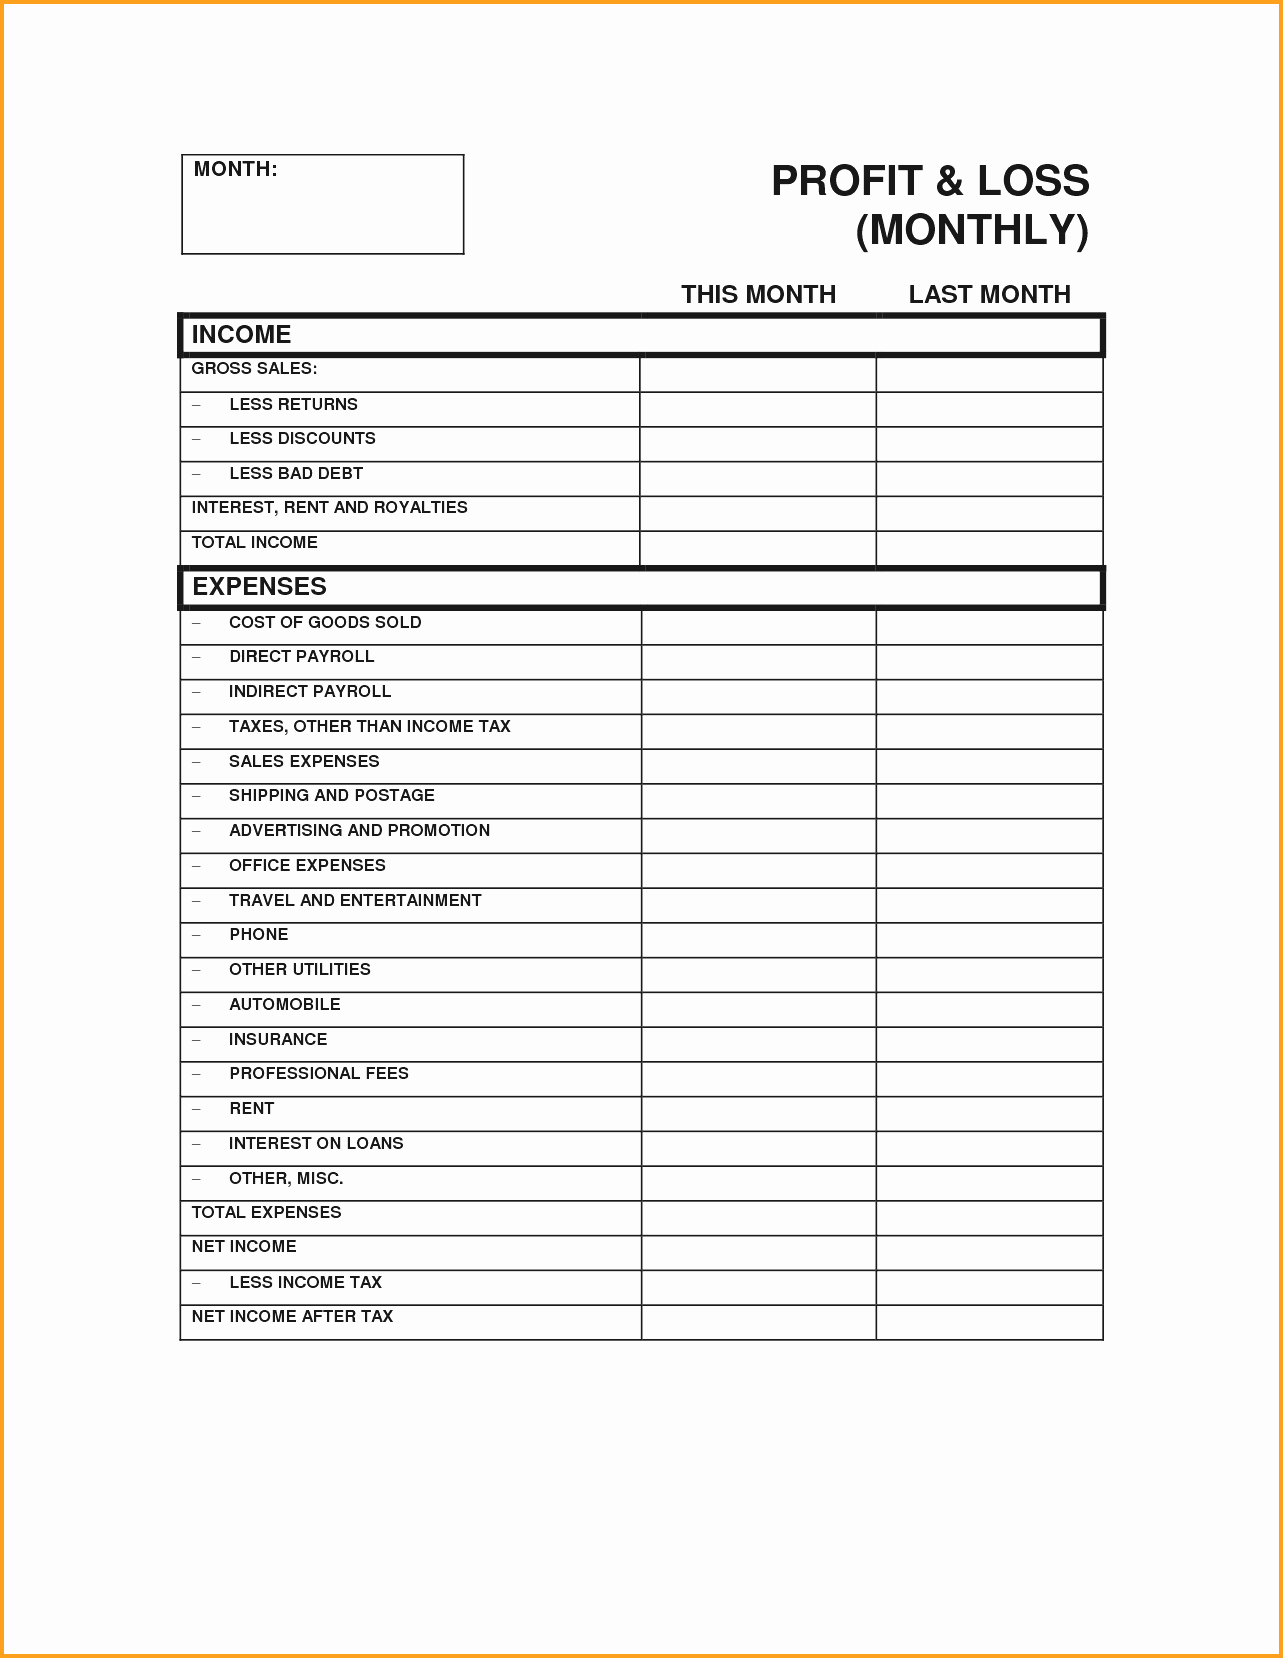 Excel Profit Loss Template Beautiful Basic P&l Template Mughals